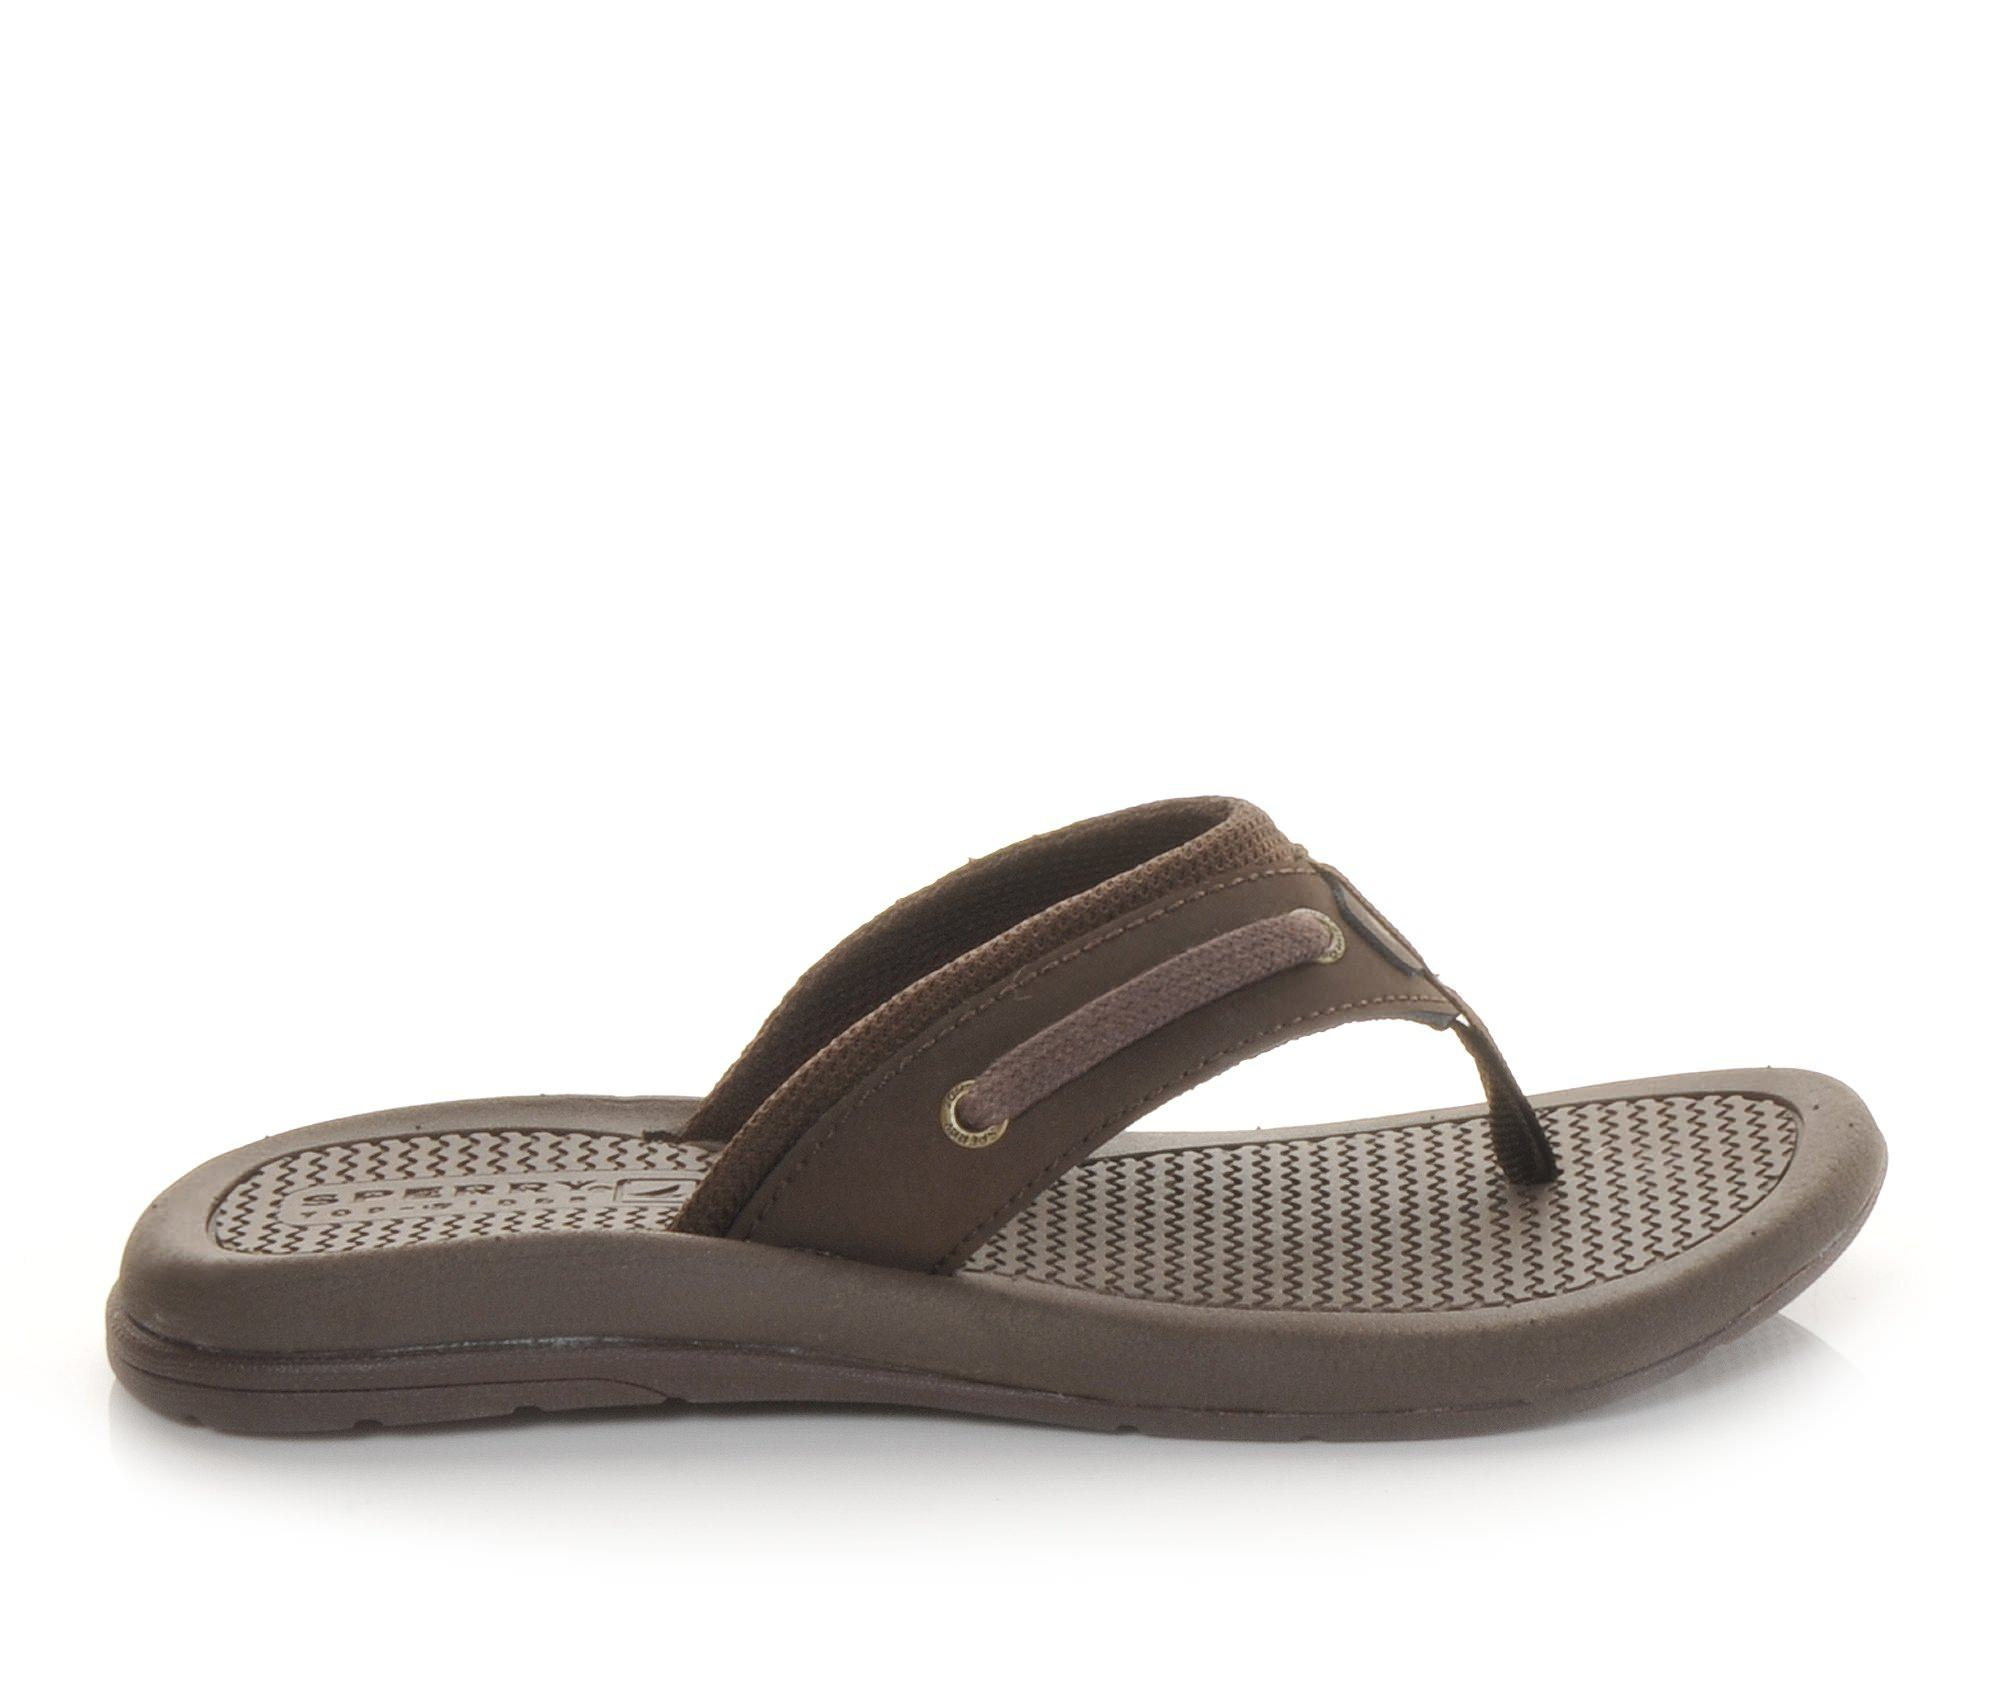 Boys' Sperry Intrepid Thong Sandals (Brown)